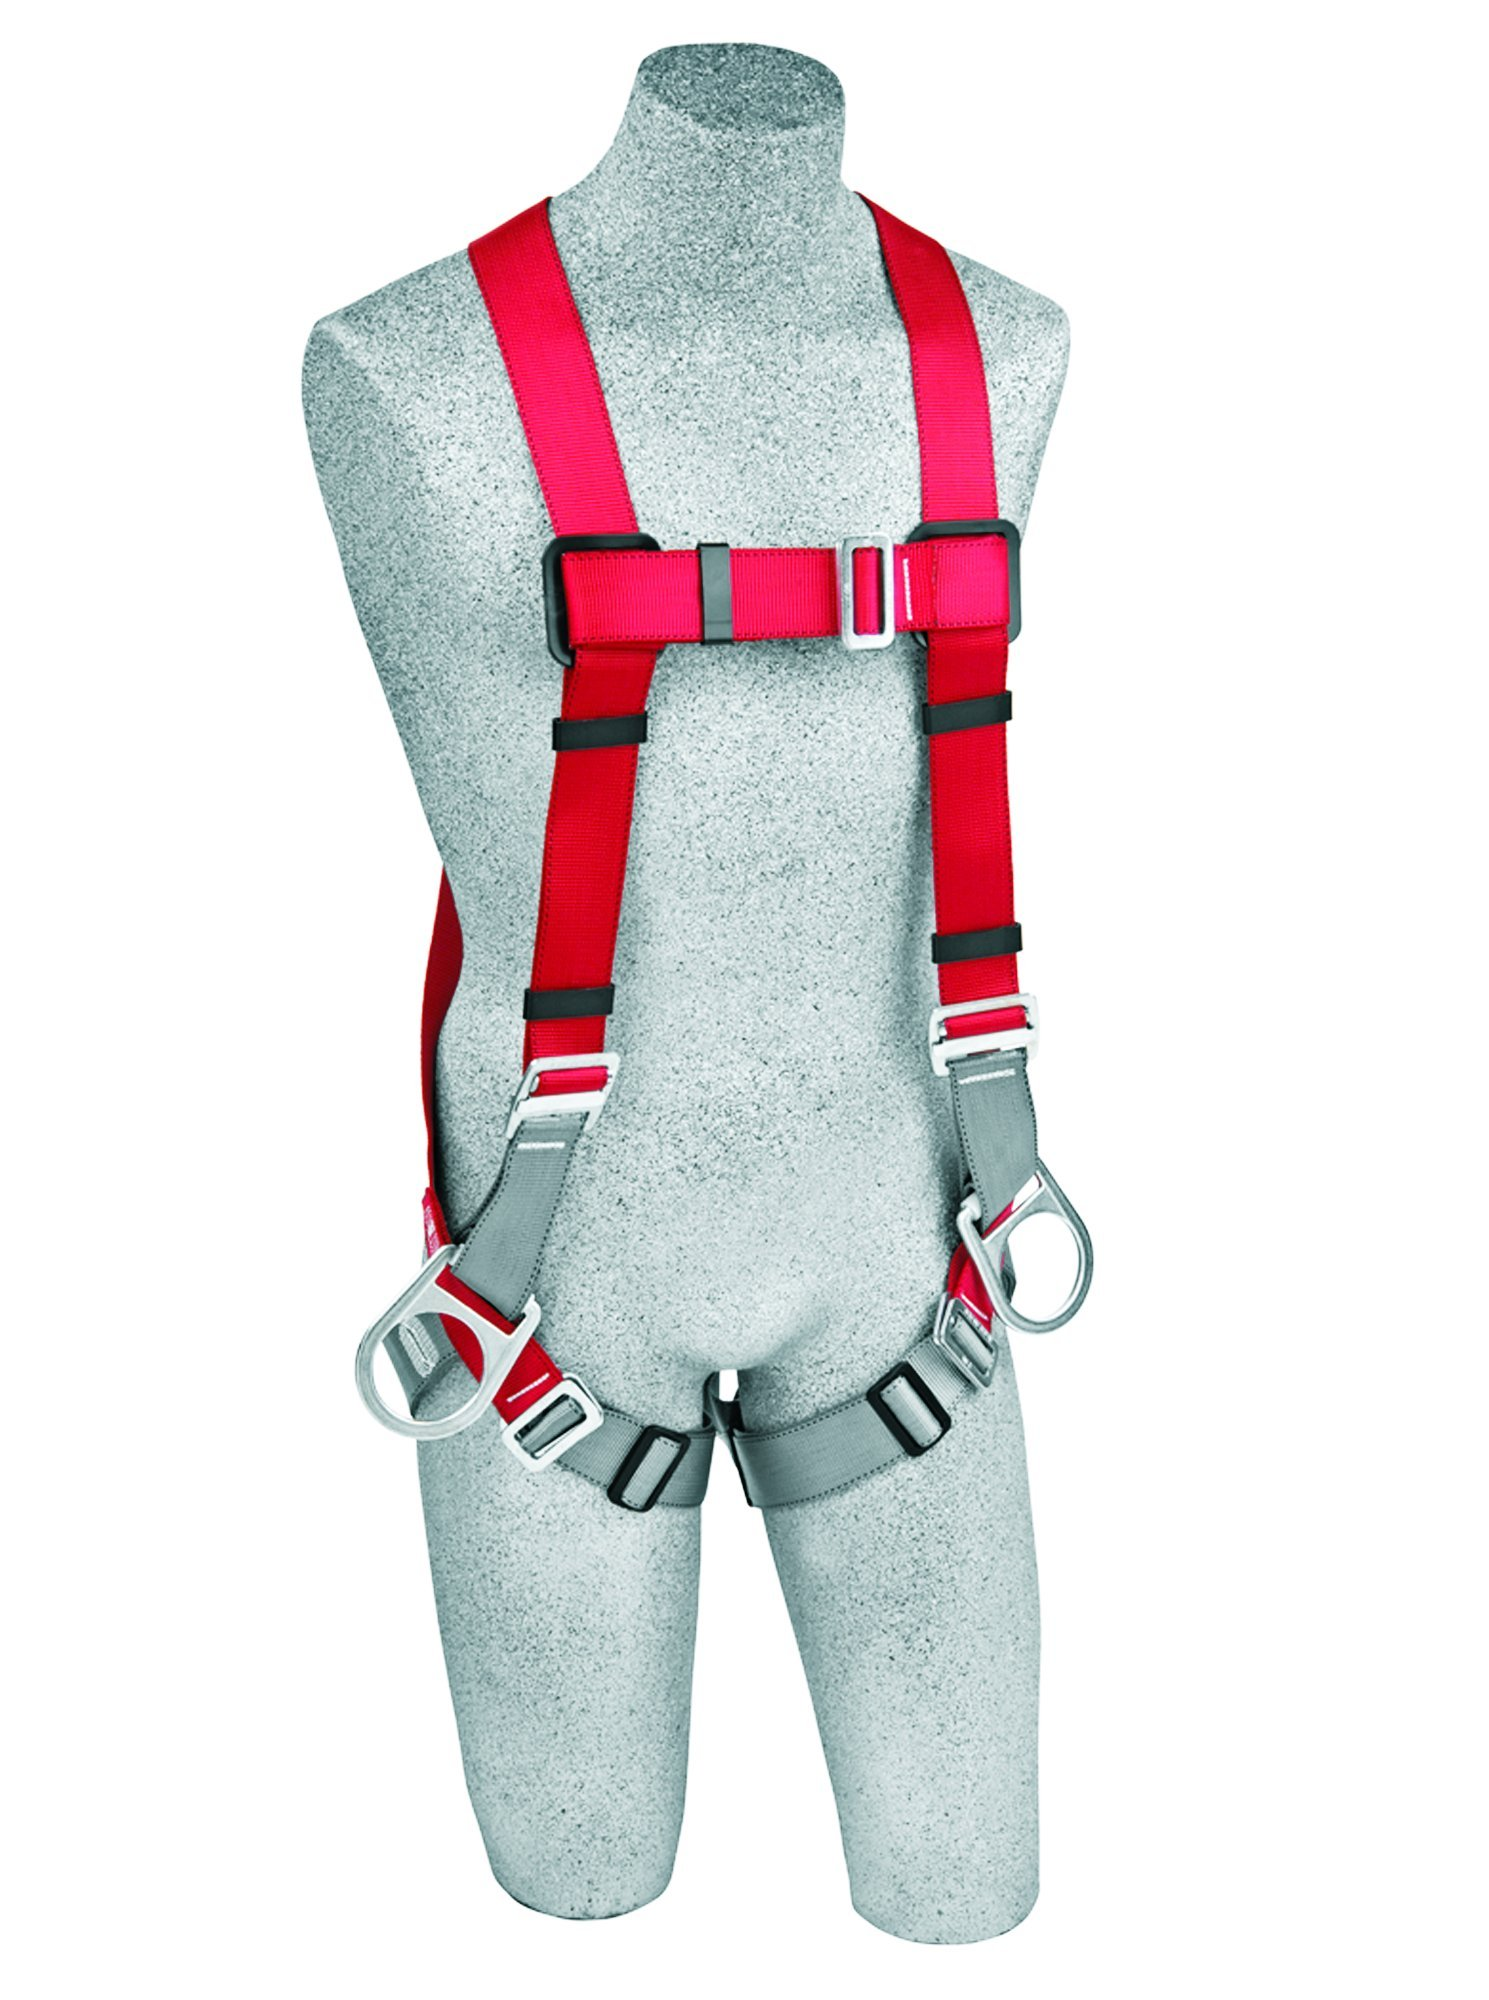 3M Protecta PRO 1191205 Harness with 3 D-Rings, Pass Thru Legs, 420  lb. Capacity, Medium/Large, Red/Gray